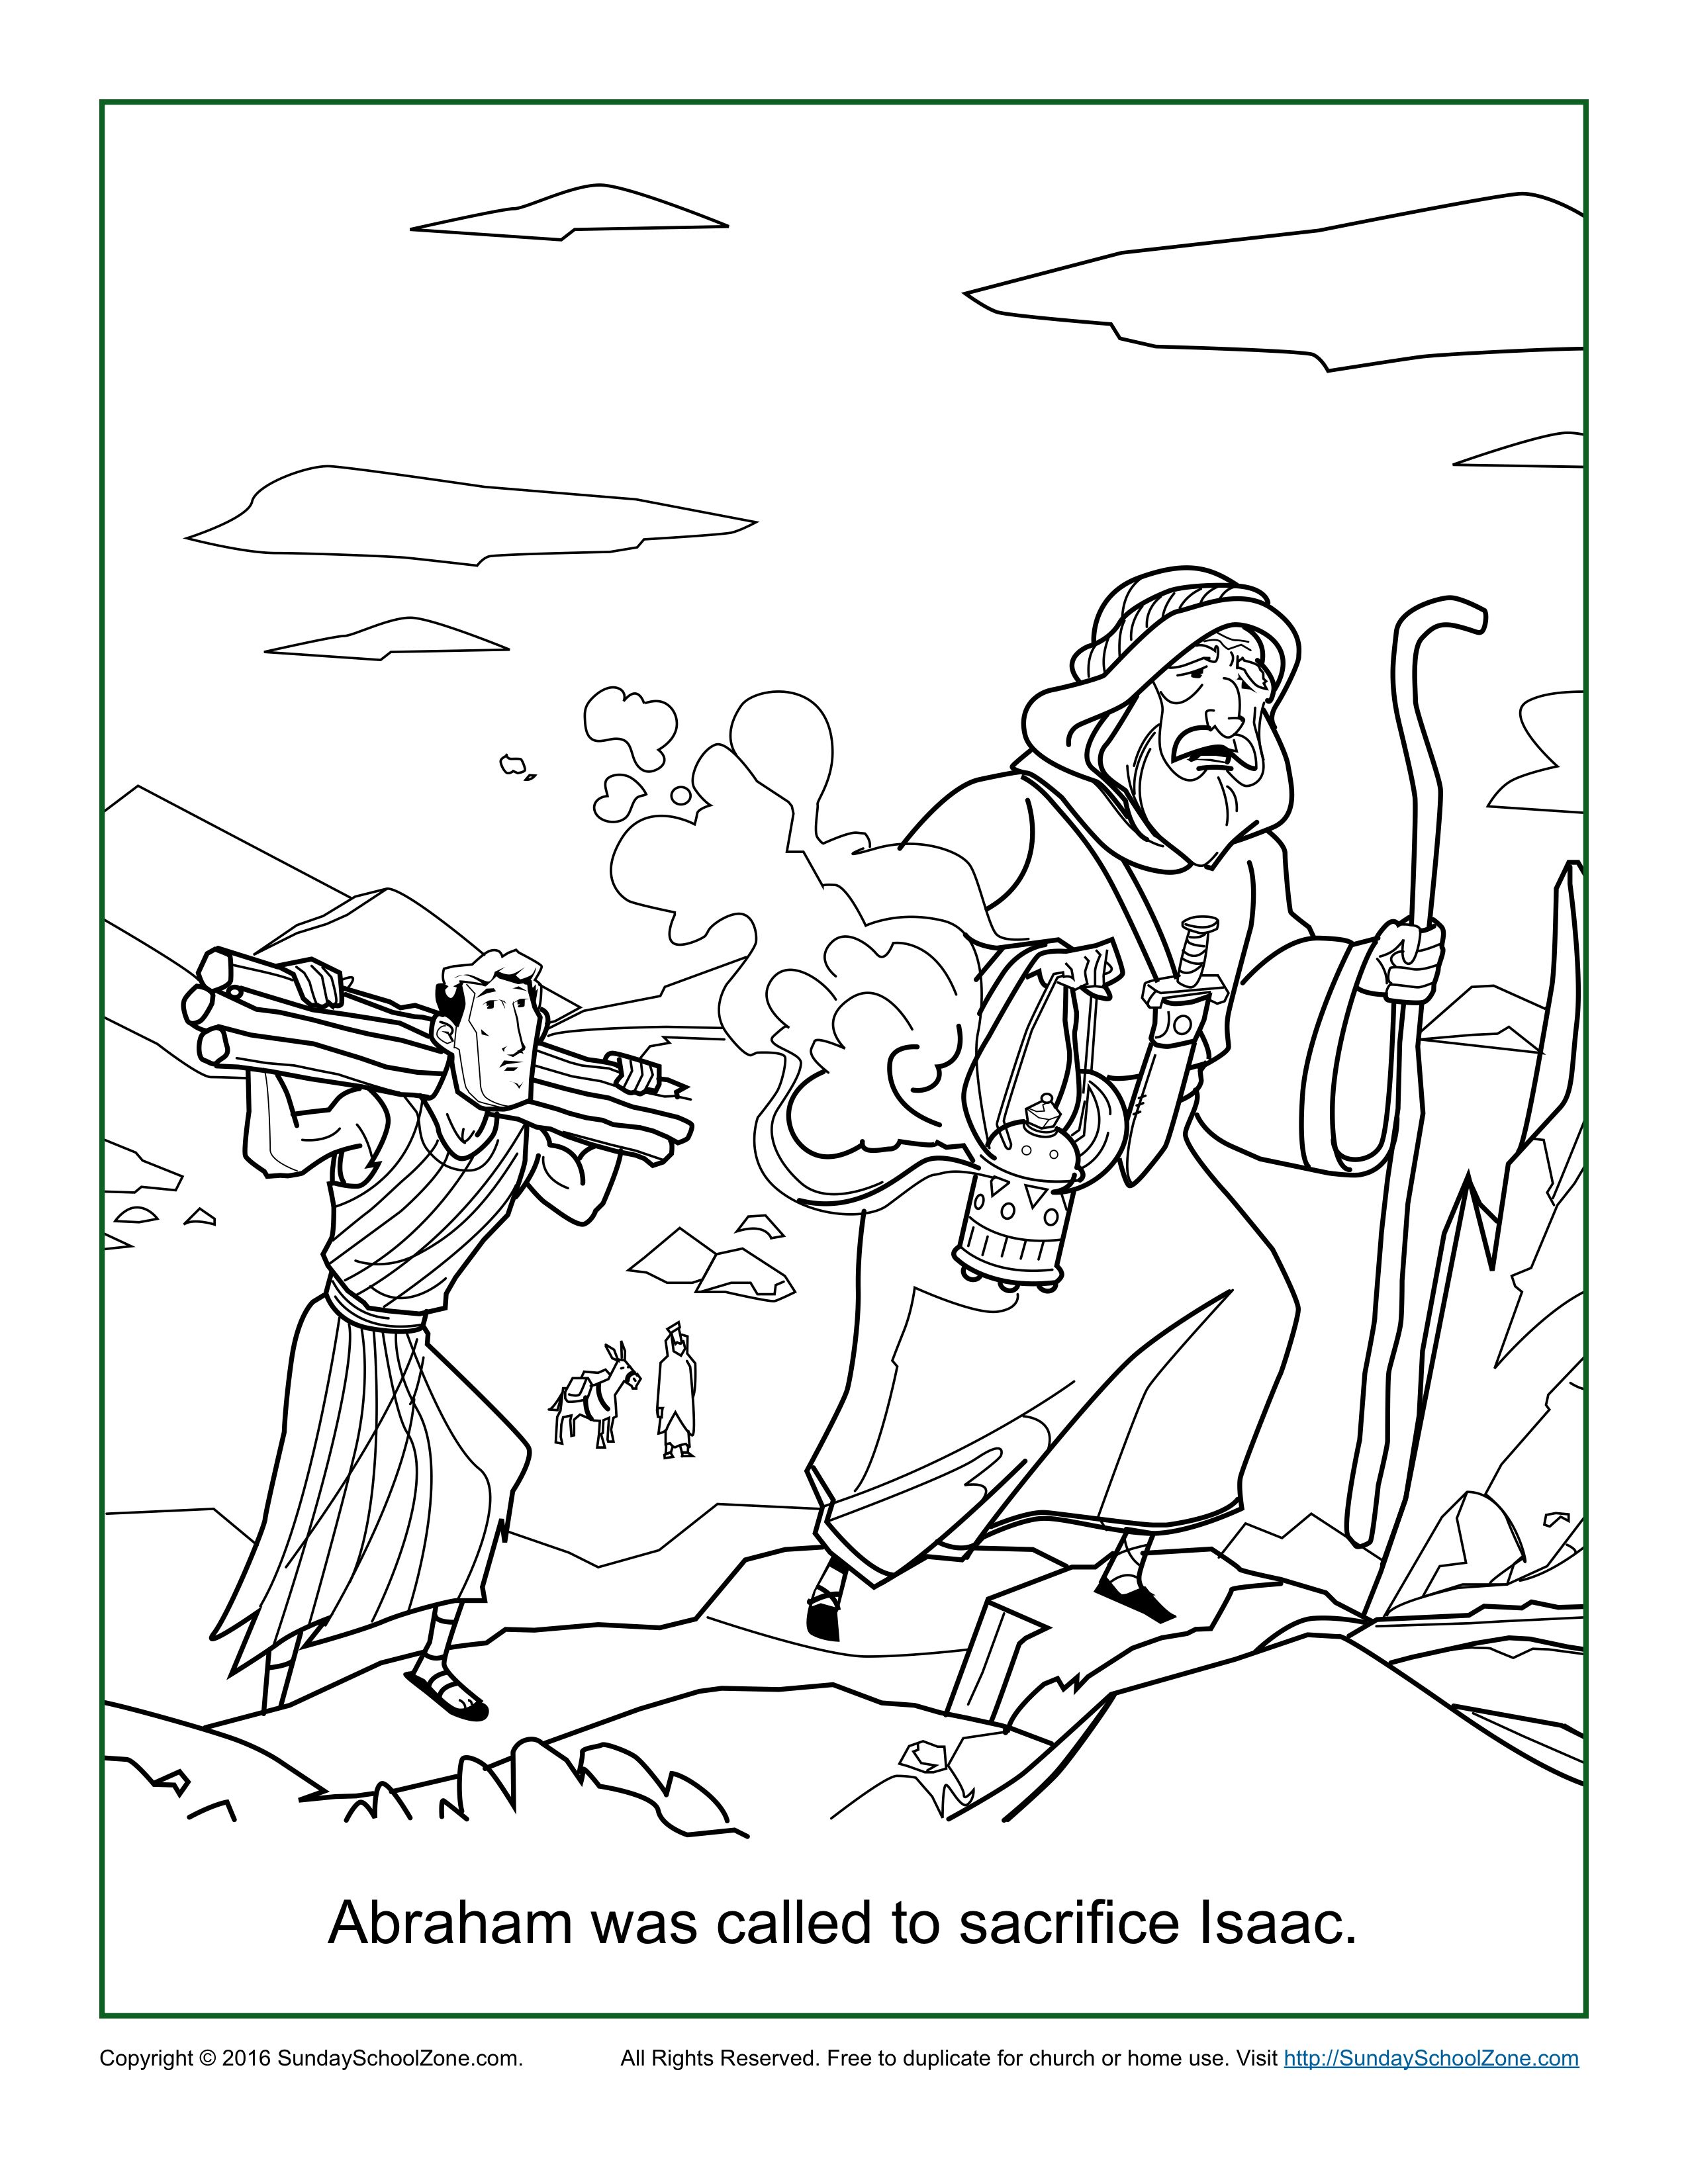 medium resolution of Abraham Was Called to Sacrifice Isaac Coloring Page - Children's Bible  Activities   Sunday School Activities for Kids   Sunday school coloring  pages